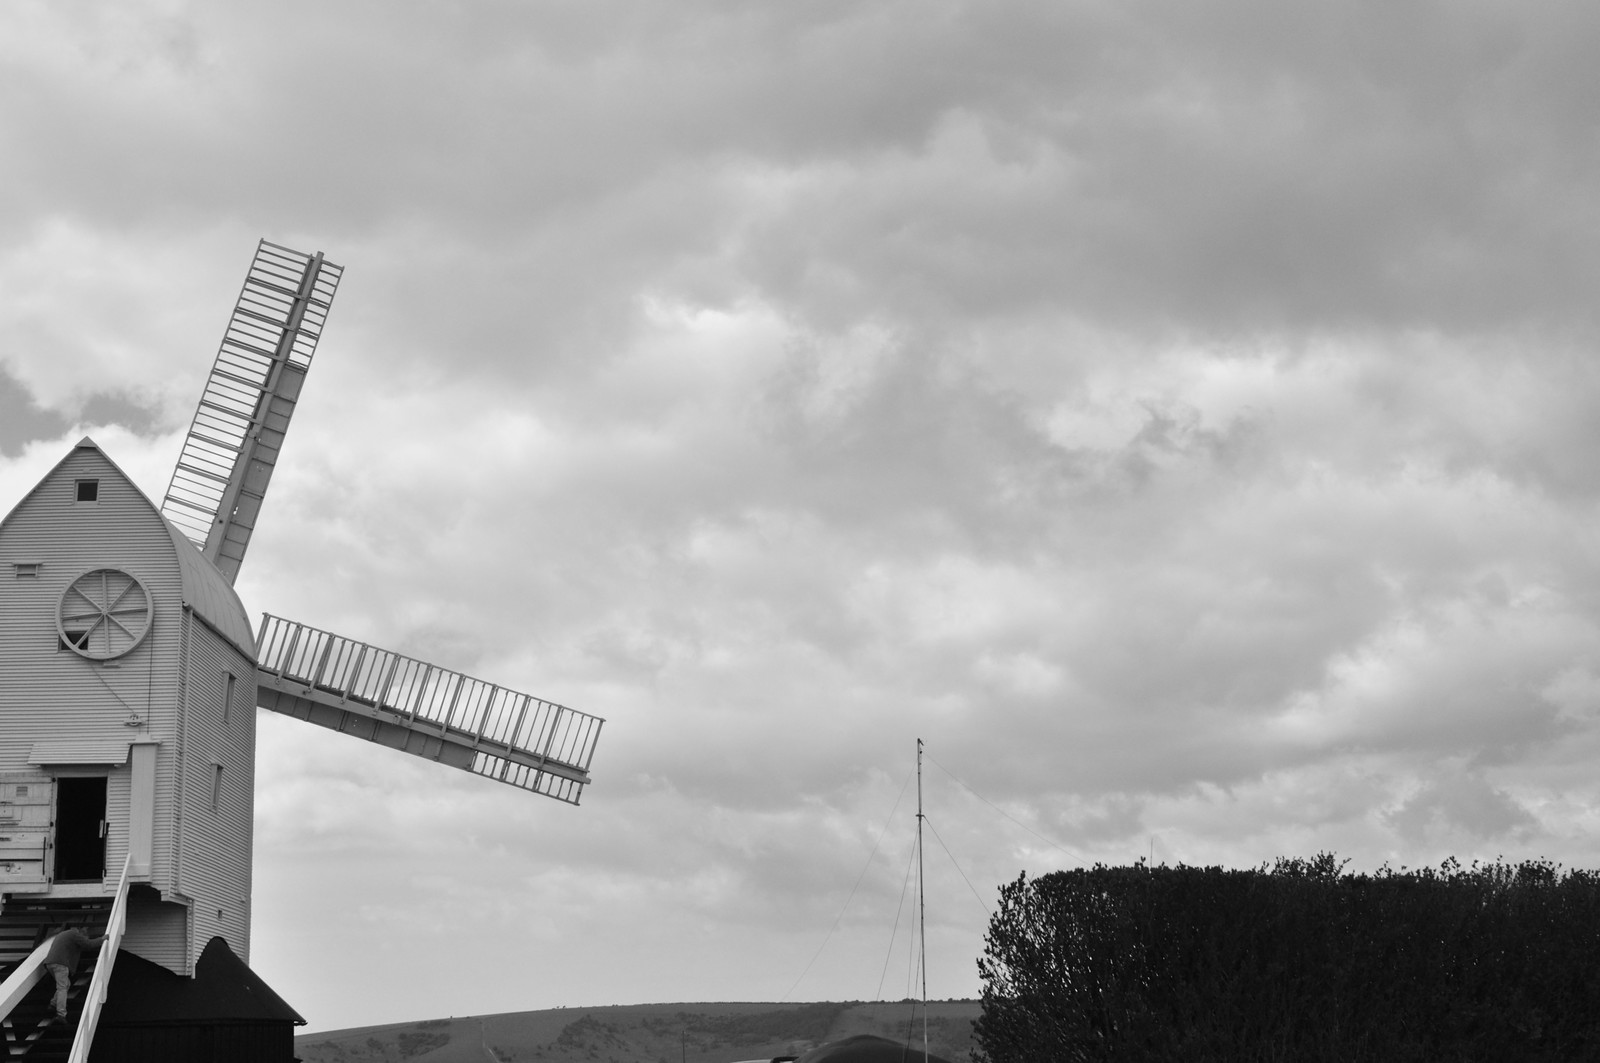 Jill A windmill on a hill